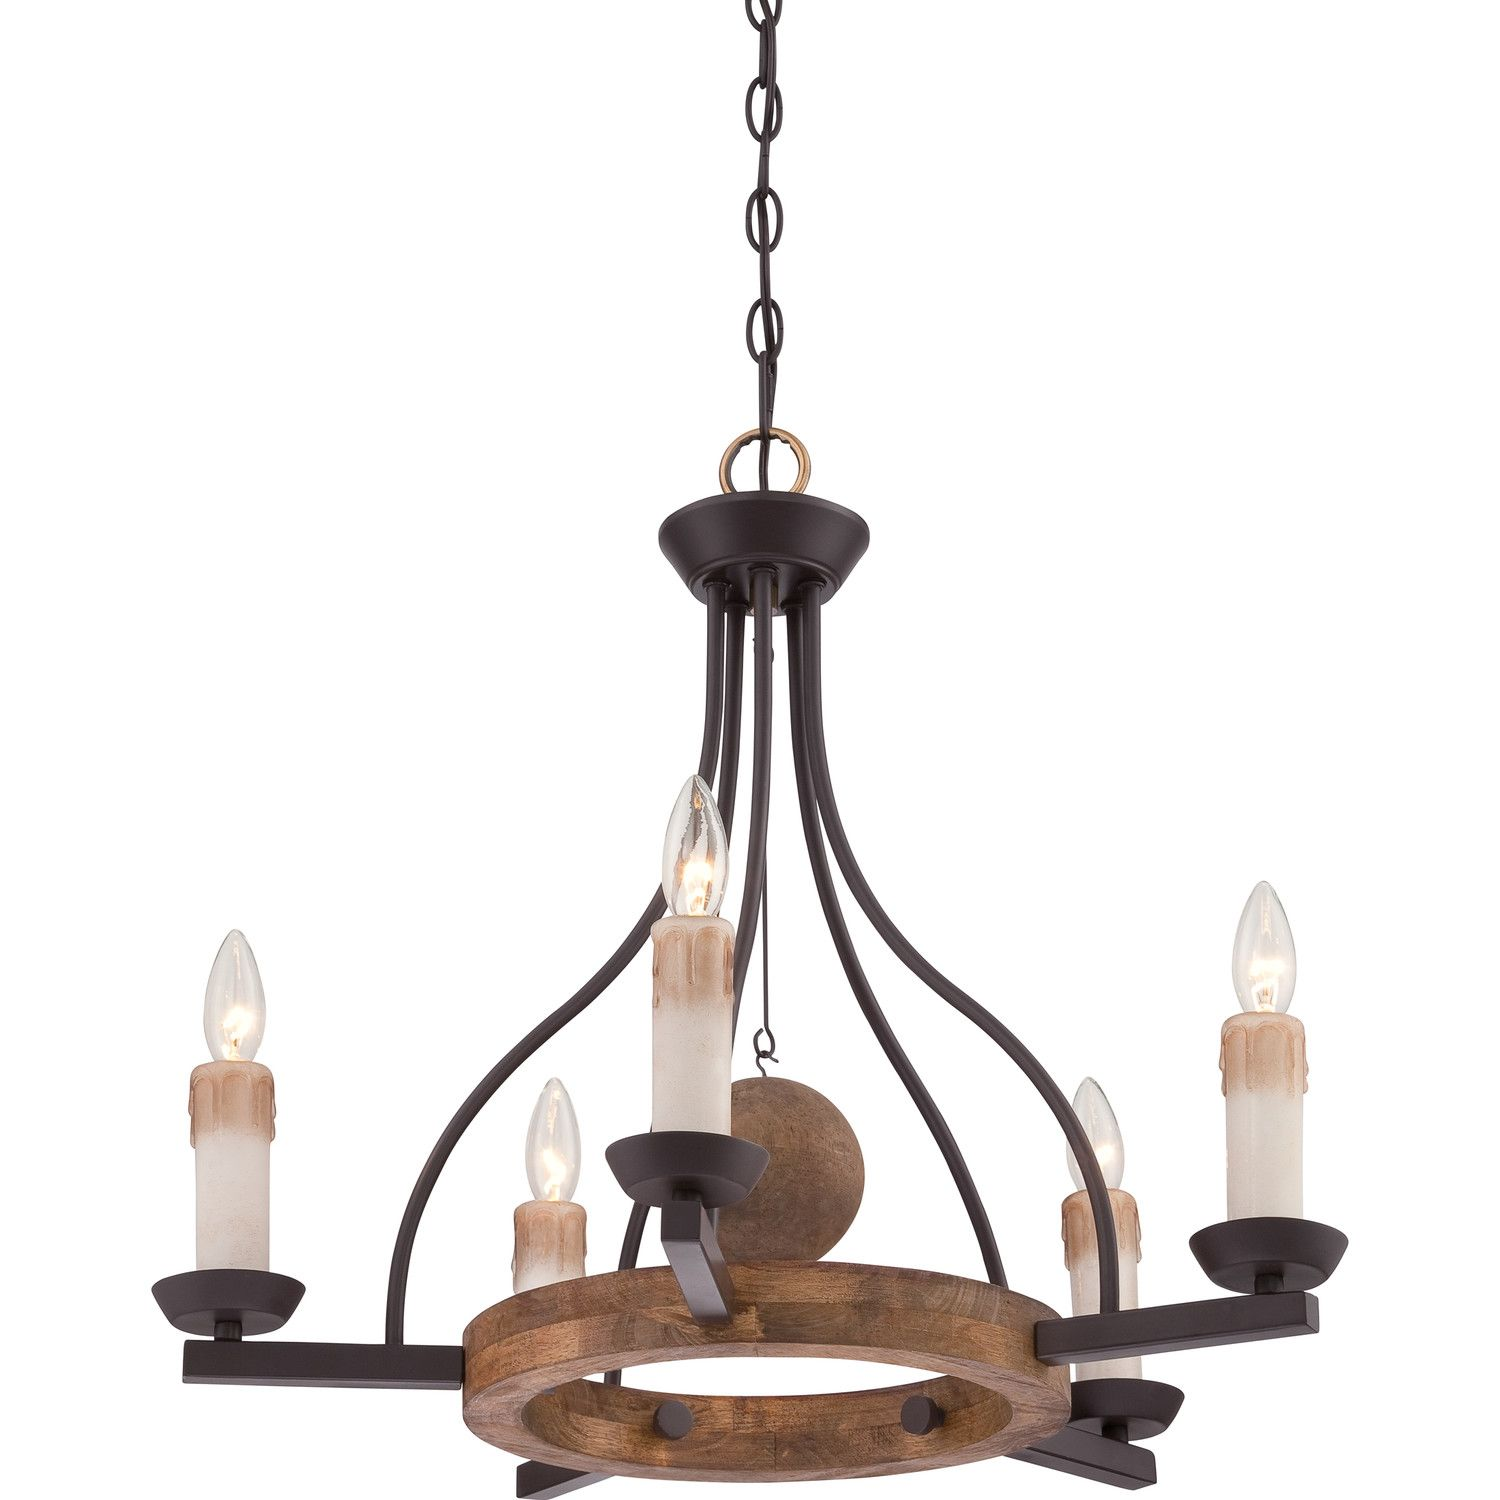 fascinating Wildon Home Chandelier Part - 15: Wildon Home ® Corra 5 Light Candle Chandelier